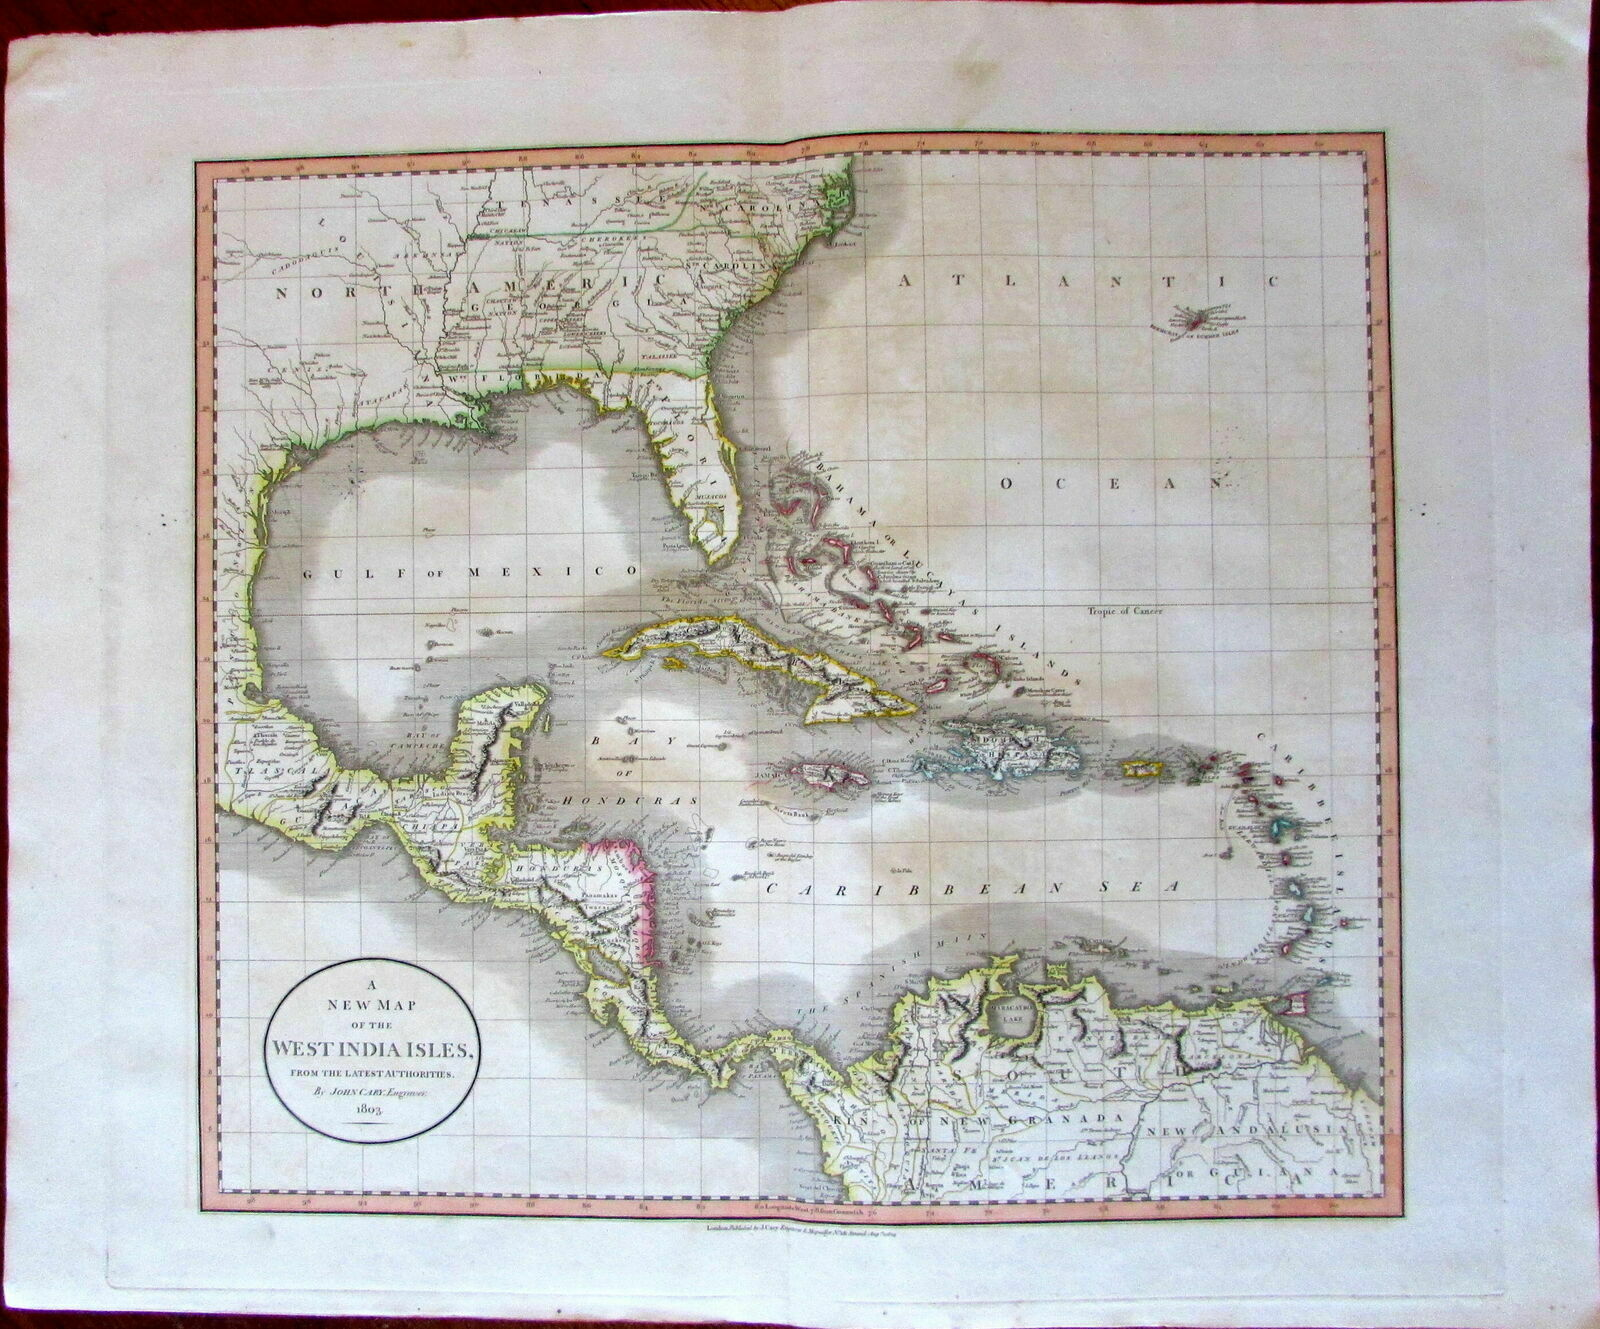 West Indies Florida Georgia 1803 John Cary lovely large old map